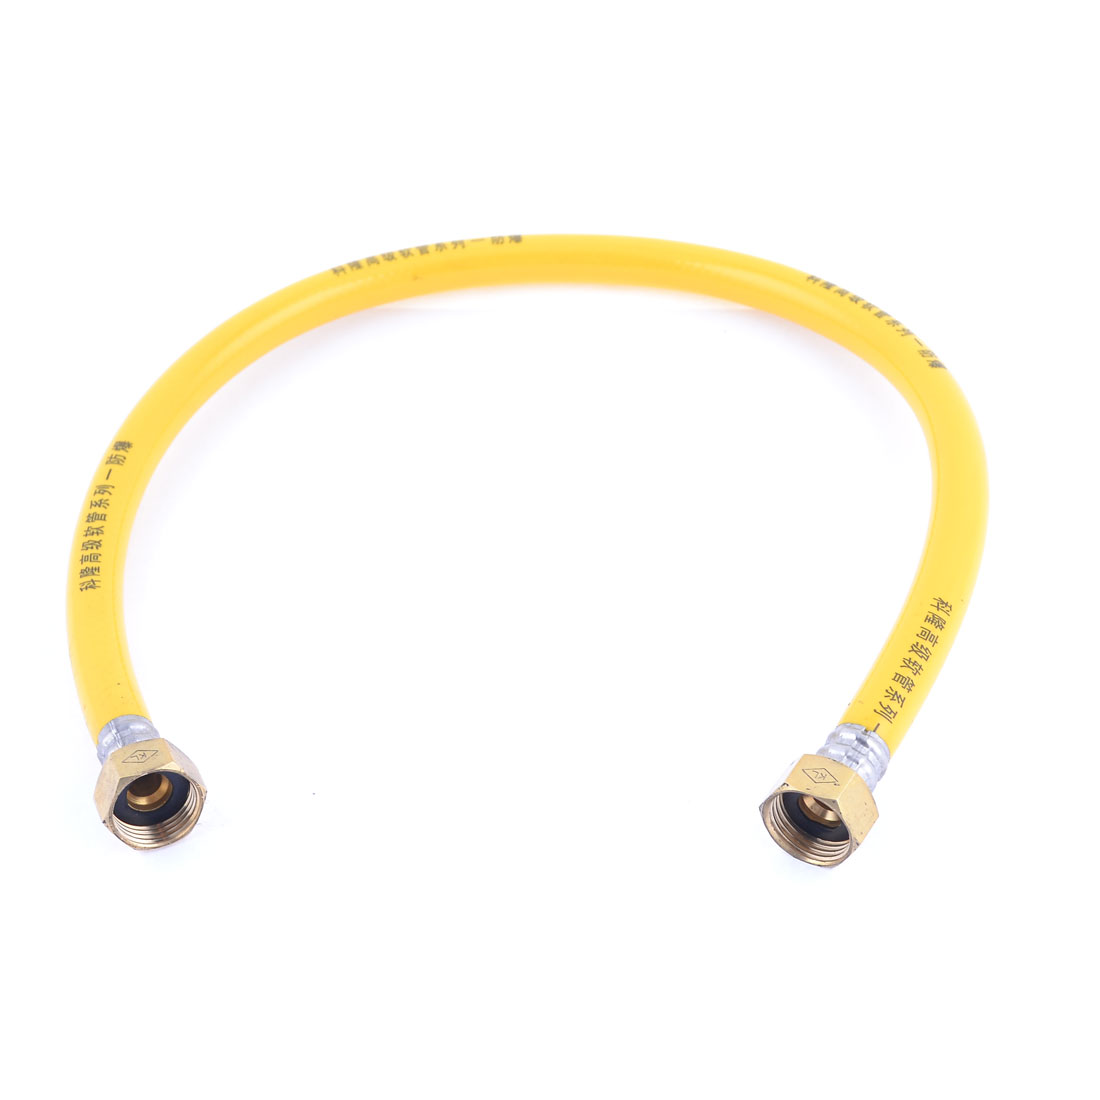 "60cm Long 1/2""PT Thread Flexible Shower Hose Water Heater Tube Pipe Yellow"